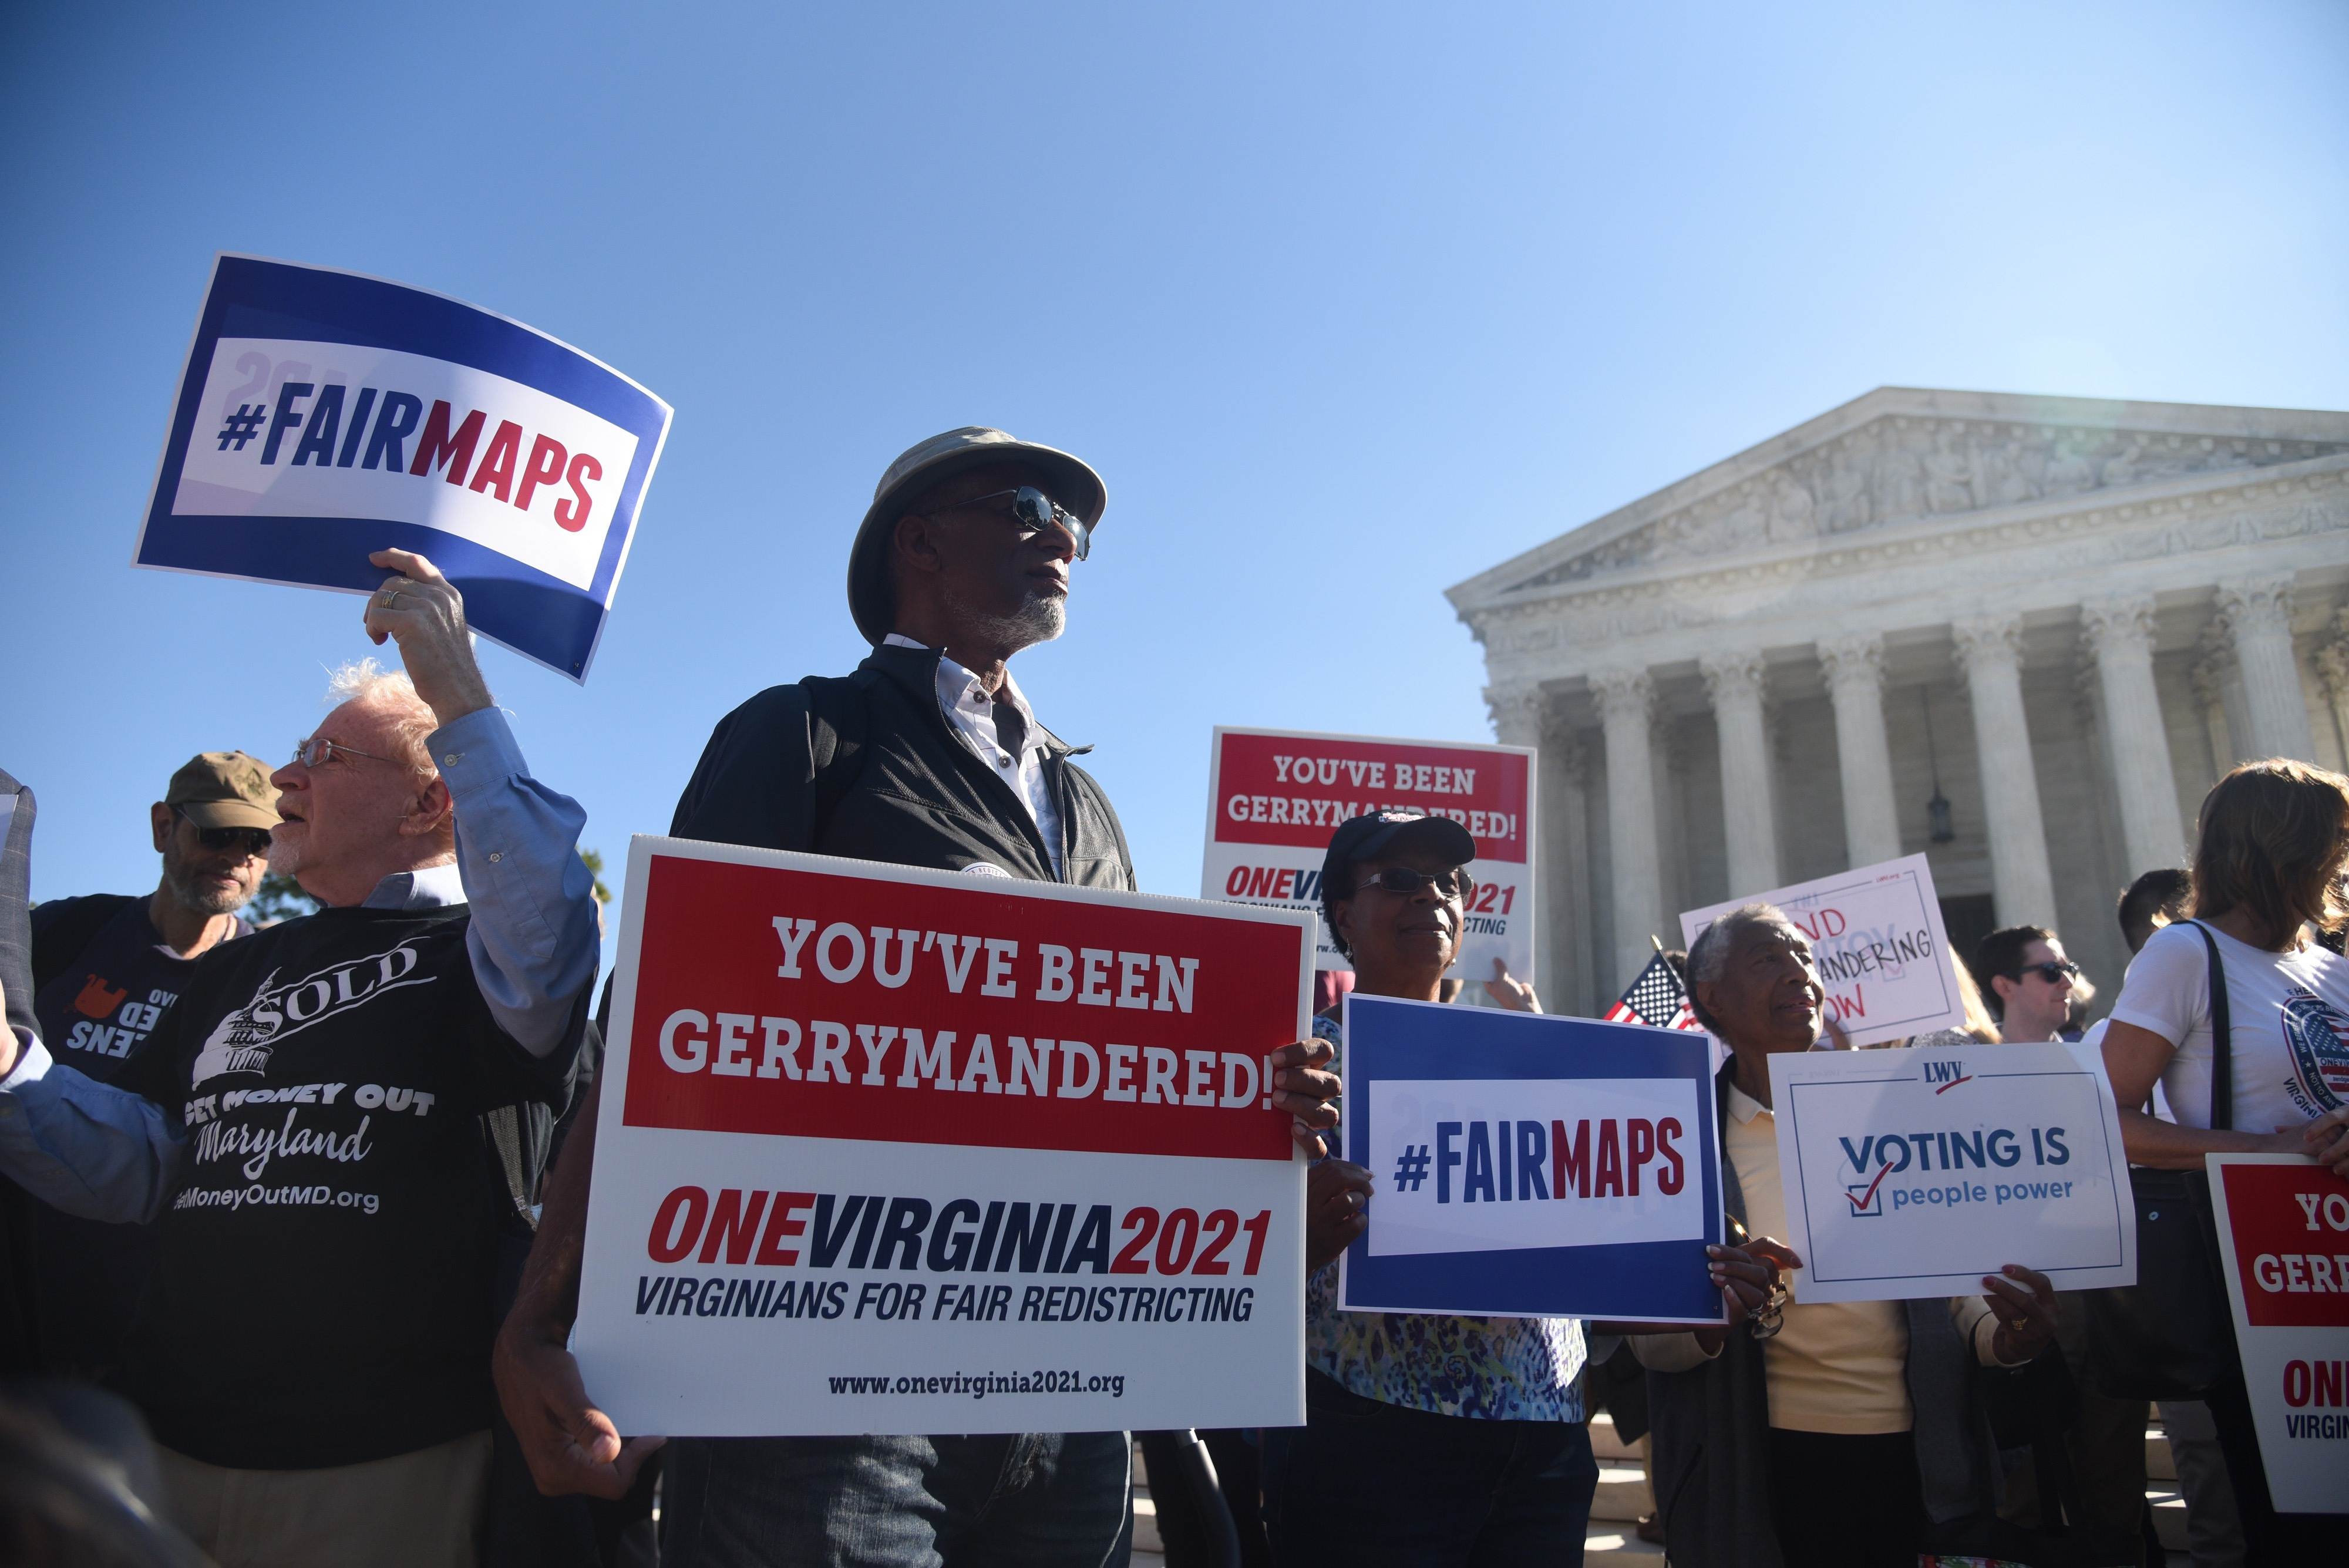 Demonstrators gather outside of the Supreme Court to call for an end to partisan gerrymandering on October 3, 2017. (Olivier Douliery/Getty Images)